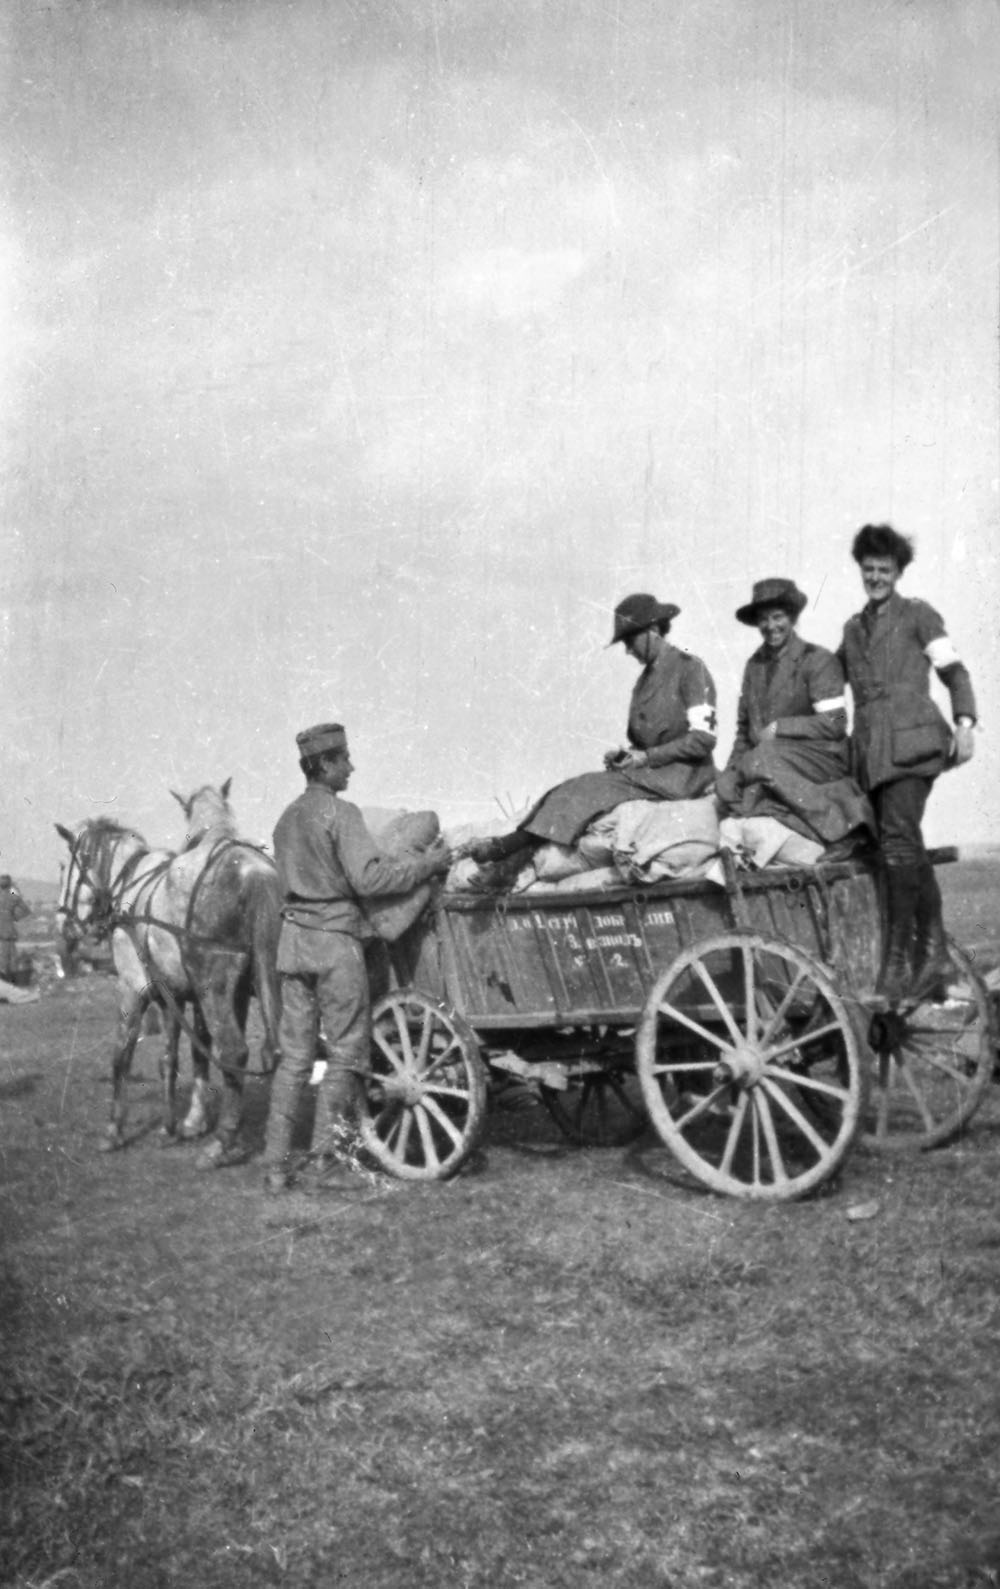 Three orderlies on cart in the uniform of the Scottish Women's Hospitals group, Romania.